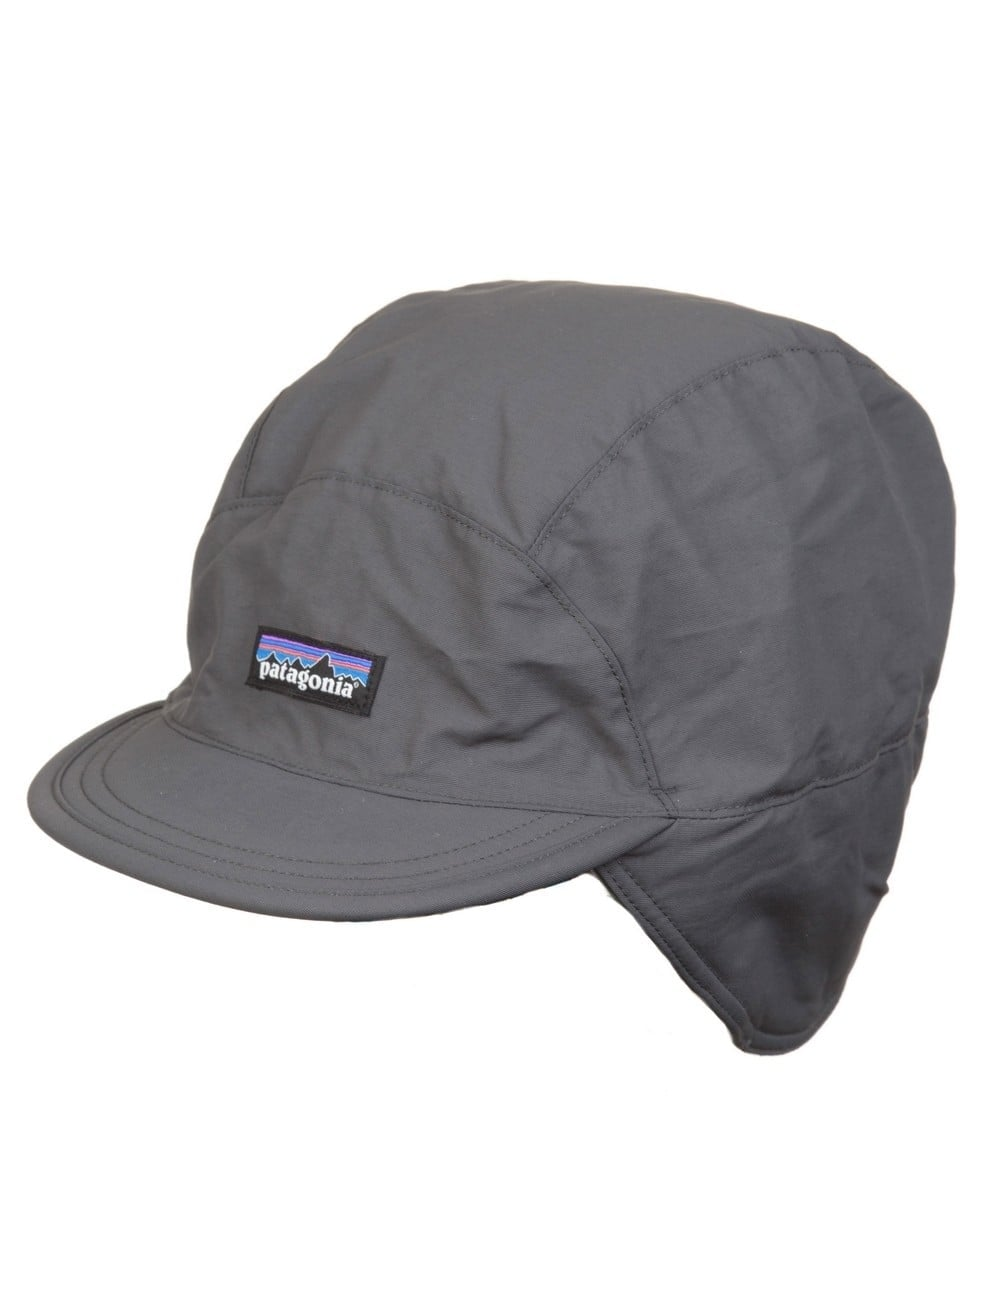 ba009f1adf2 Patagonia Shelled Synchilla Duckbill Cap - Forge Grey - Accessories ...